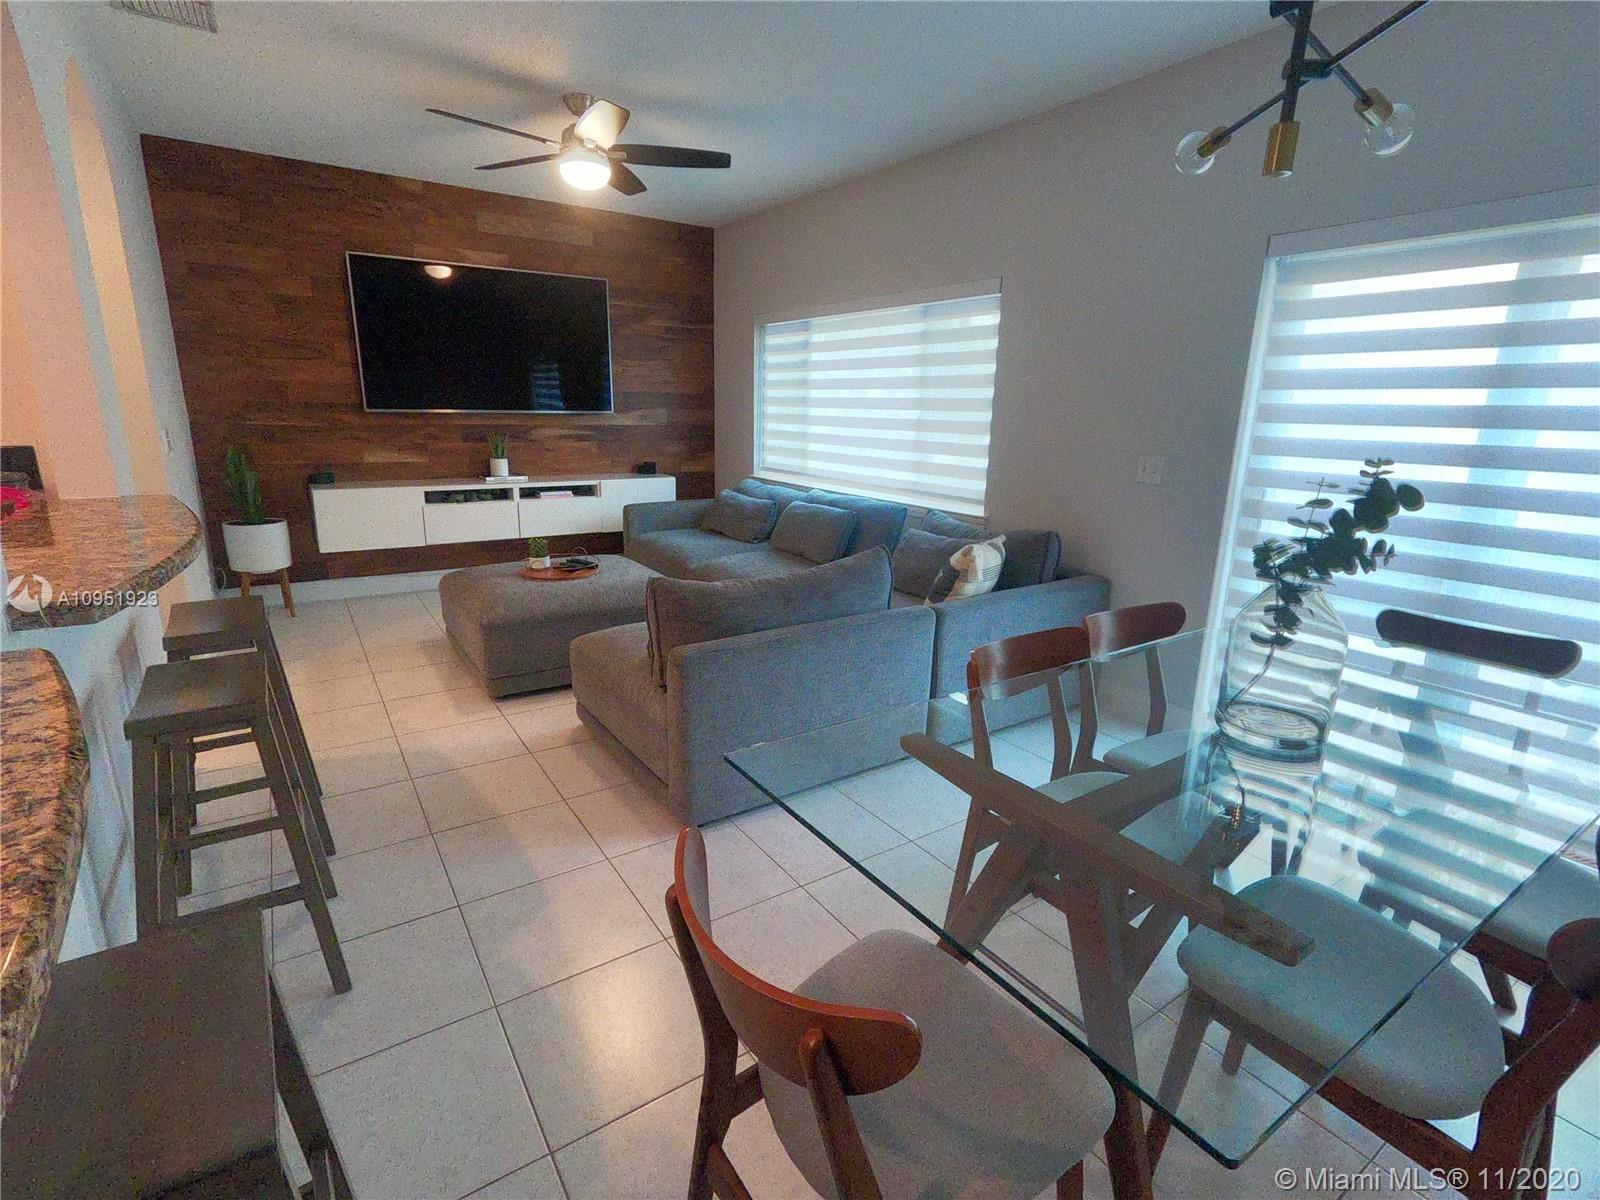 Owner will be keeping washer, dryer and chandelier. Immaculate Property, once you see it you will buy it!... Viewing by appointments only.